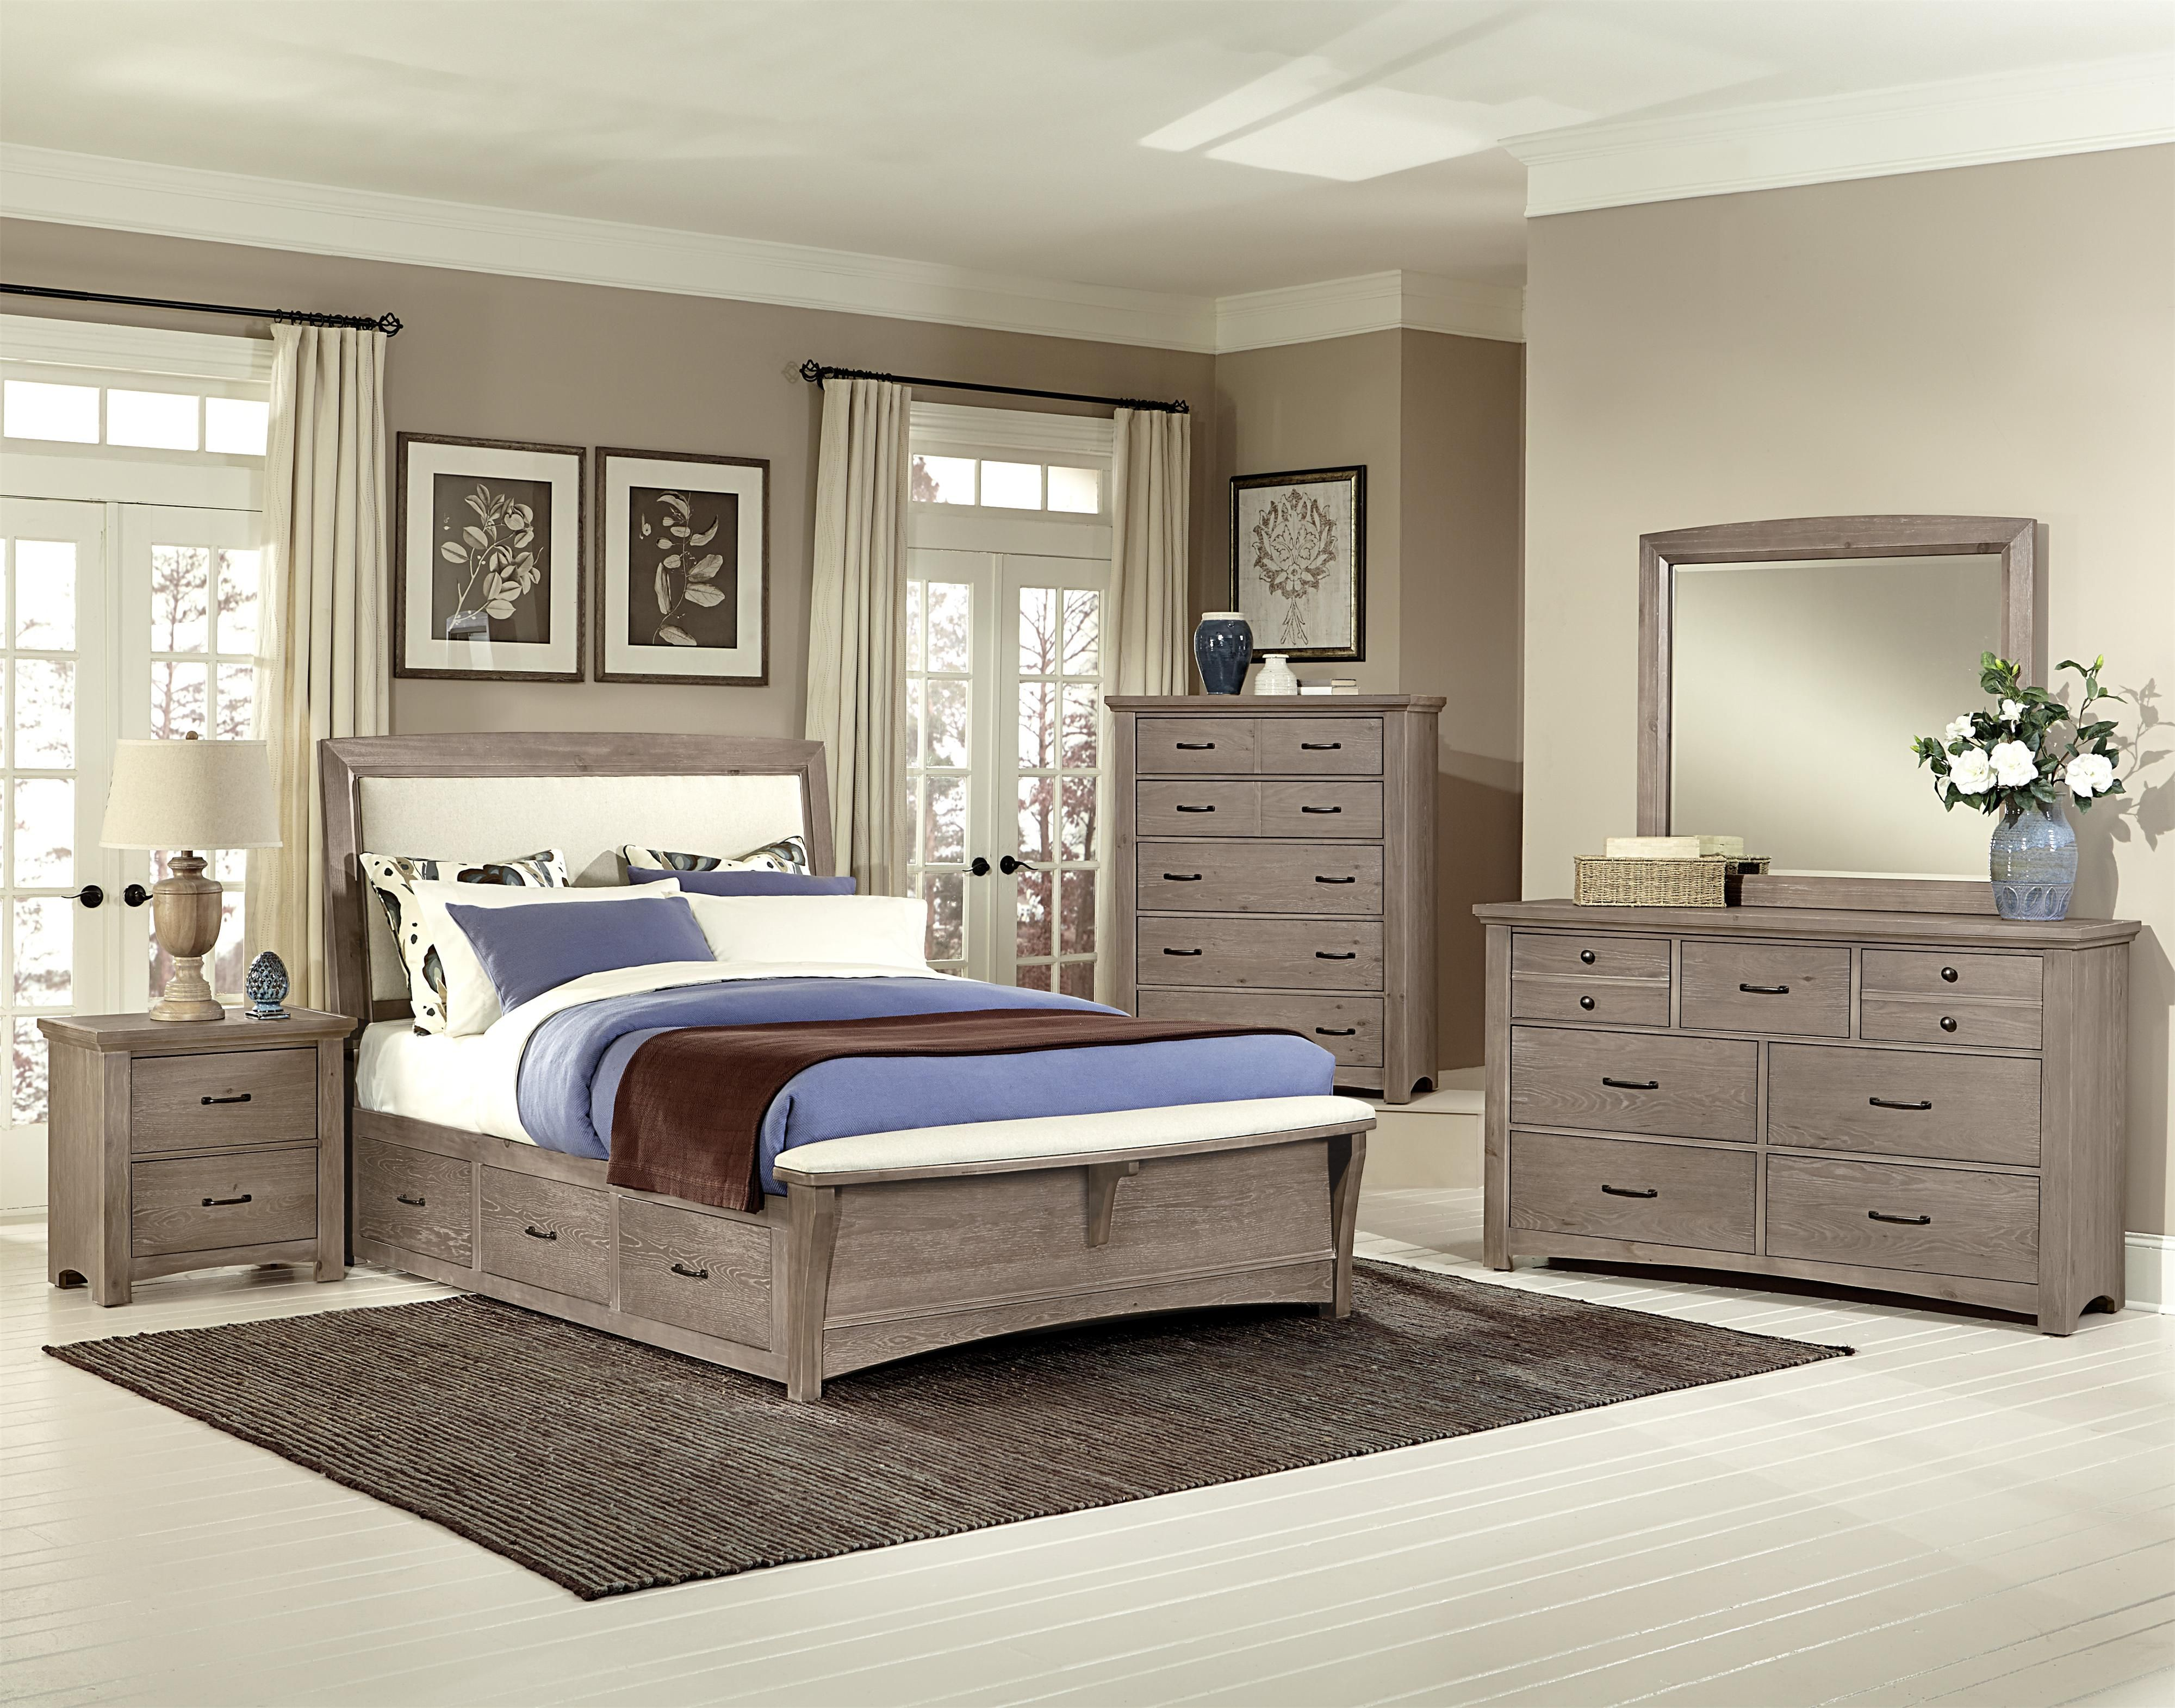 Transitions King Bedroom Group by Vaughan Bassett King